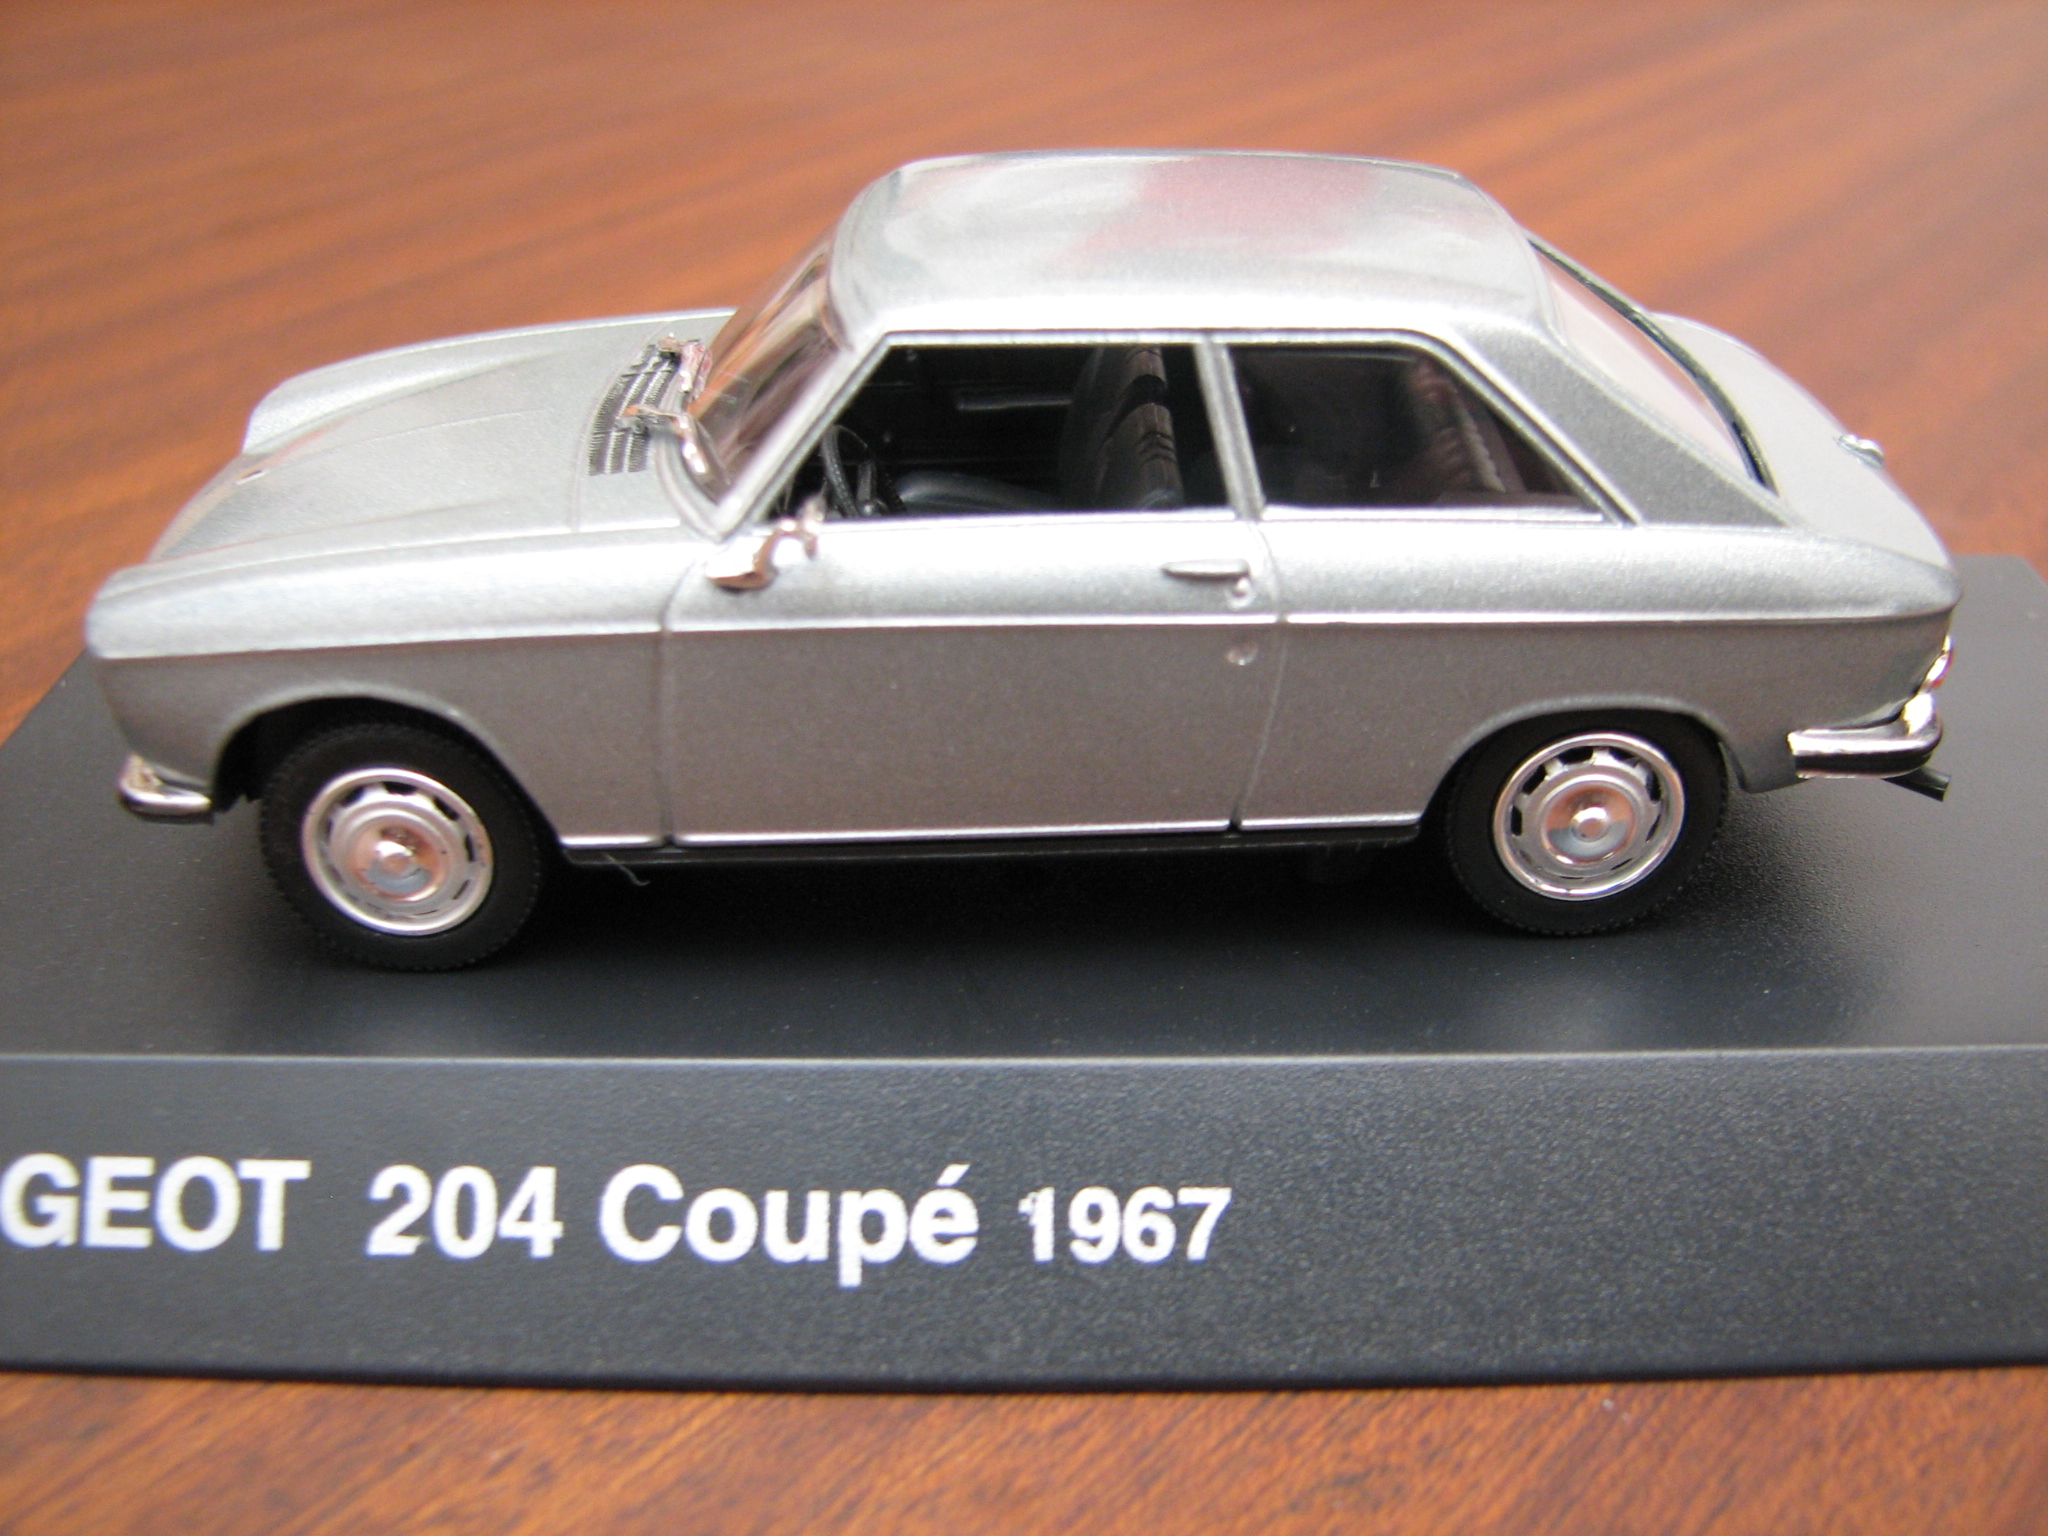 Peugeot 204 Coupe